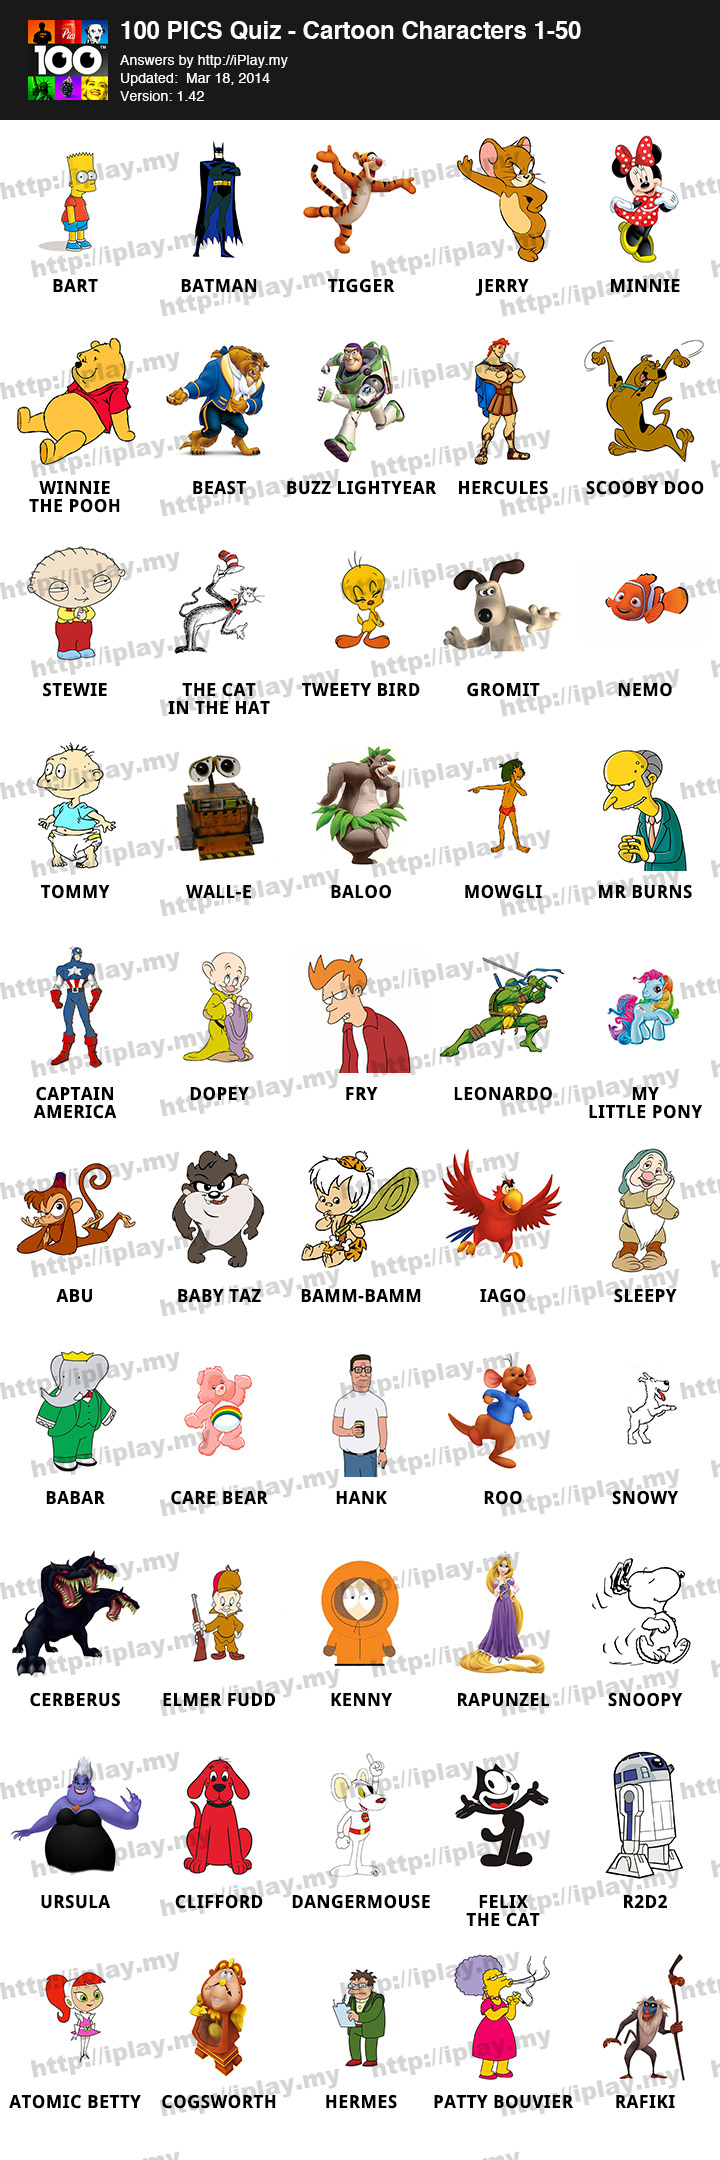 100 PICS Quiz – Cartoon Characters 1-50 Answer Lists